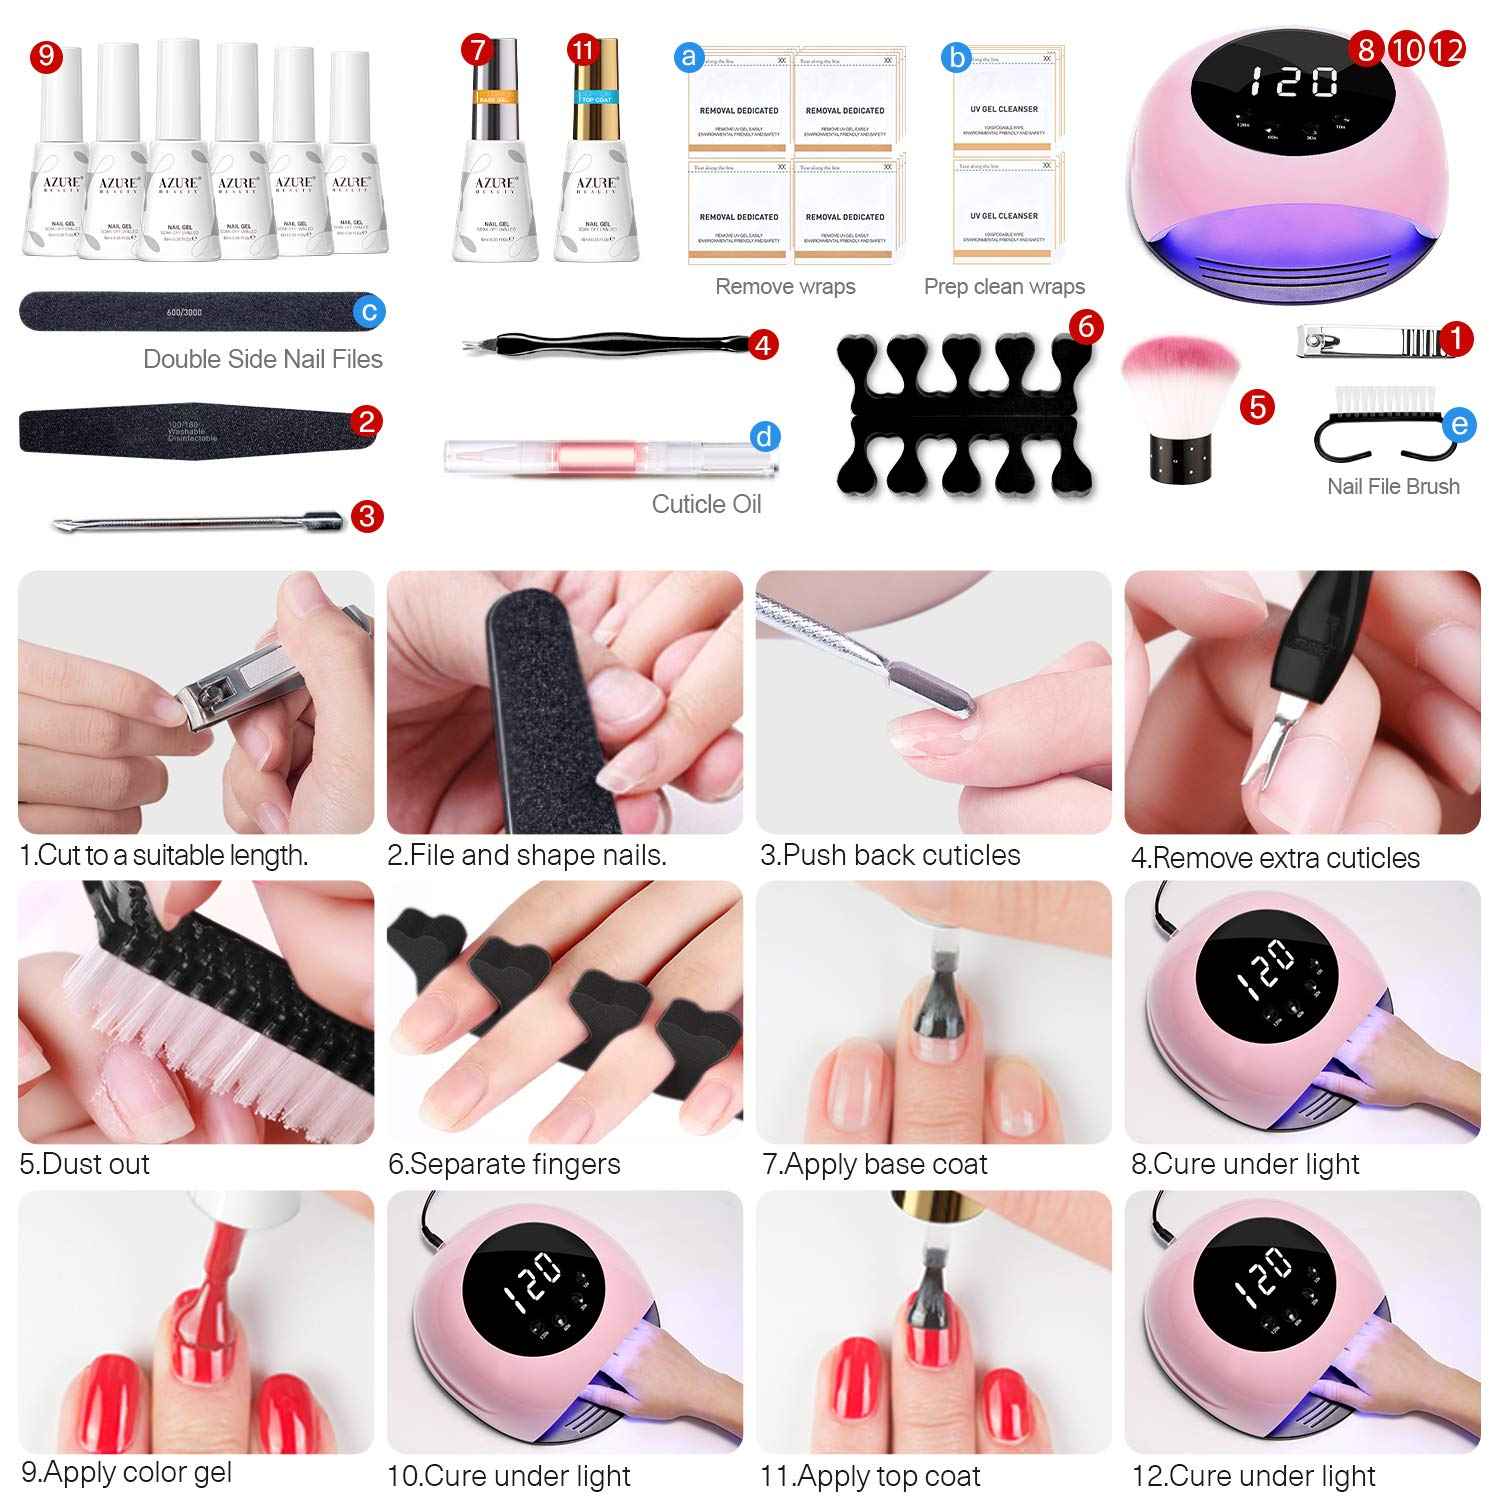 Gel Nail Polish Start Kit with 84W Nail Lamp, Gel Nail Polish Kit Nude Pink Glitter 6 Colors 10ML Gel Polish and No Wipe Top and Base Coat, Soak Off Gel Color Set Manicure Tools : Beauty